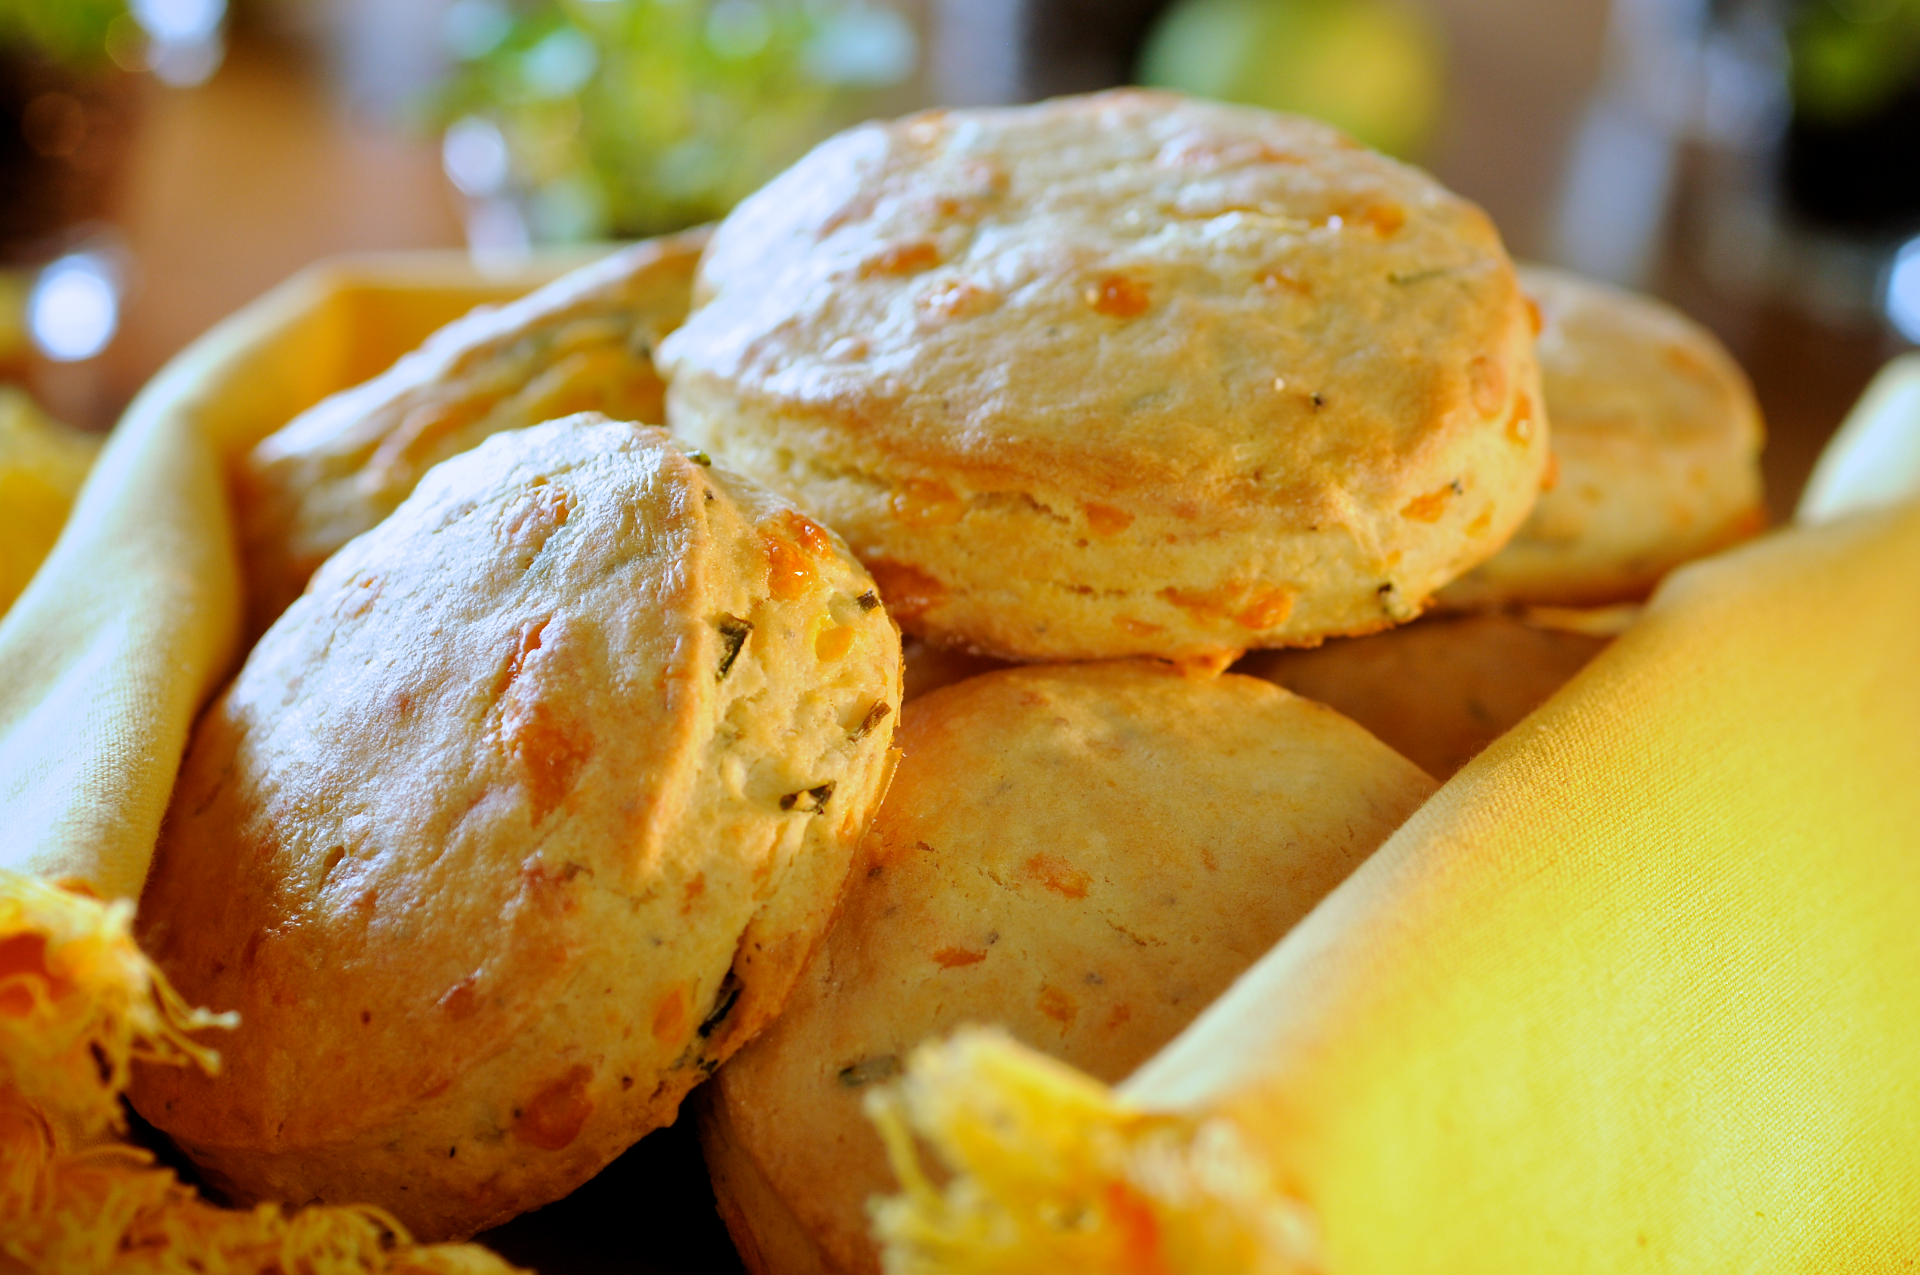 These warm and cheesy scones make an unexpected and welcome addition to any meal. These scones are full of flavor. Try them with dinner and maybe even breakfast.